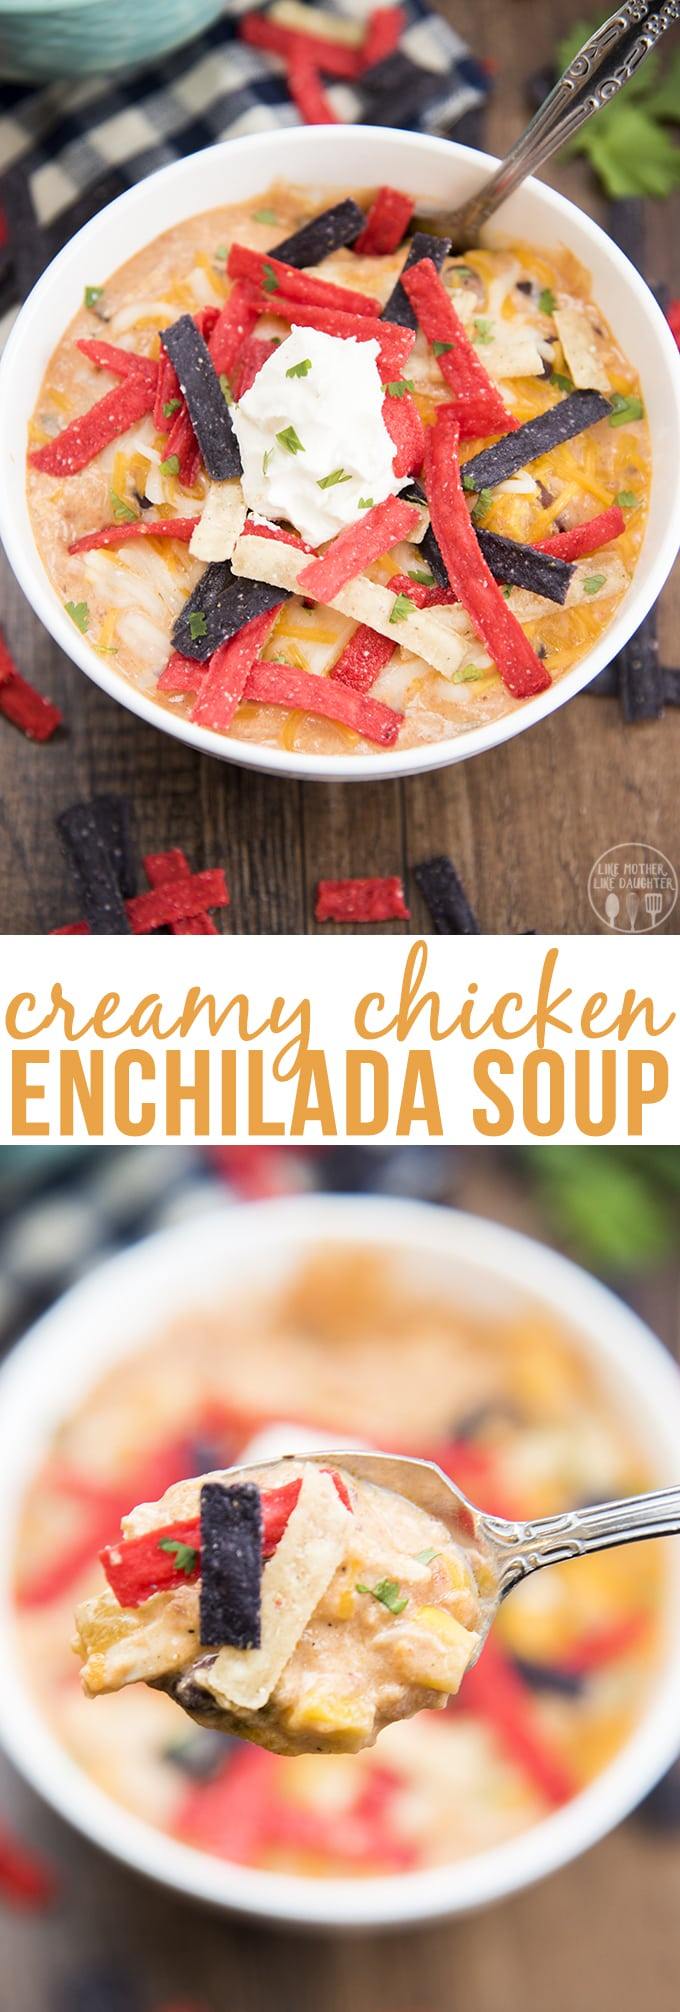 TCreamy chicken enchilada soup is packed full of flavors with black beans, shredded chicken, corn, diced tomatoes and more for a creamy and delicious, comforting bowl of soup that everyone will love!